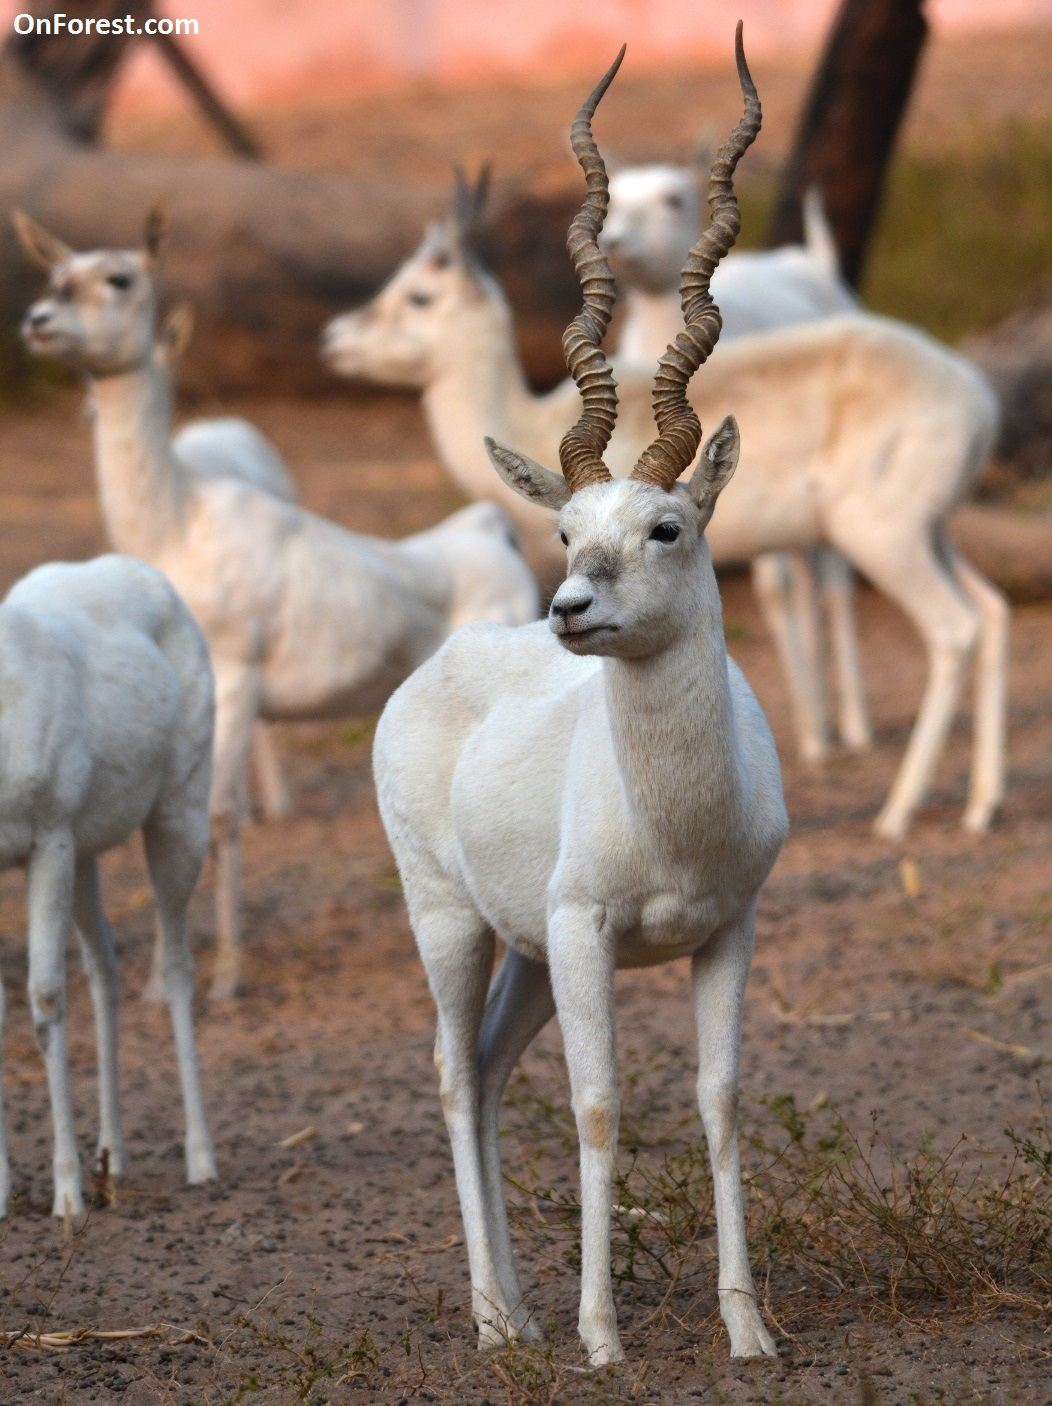 Rare White Albino Blackbuck_OnForest.com